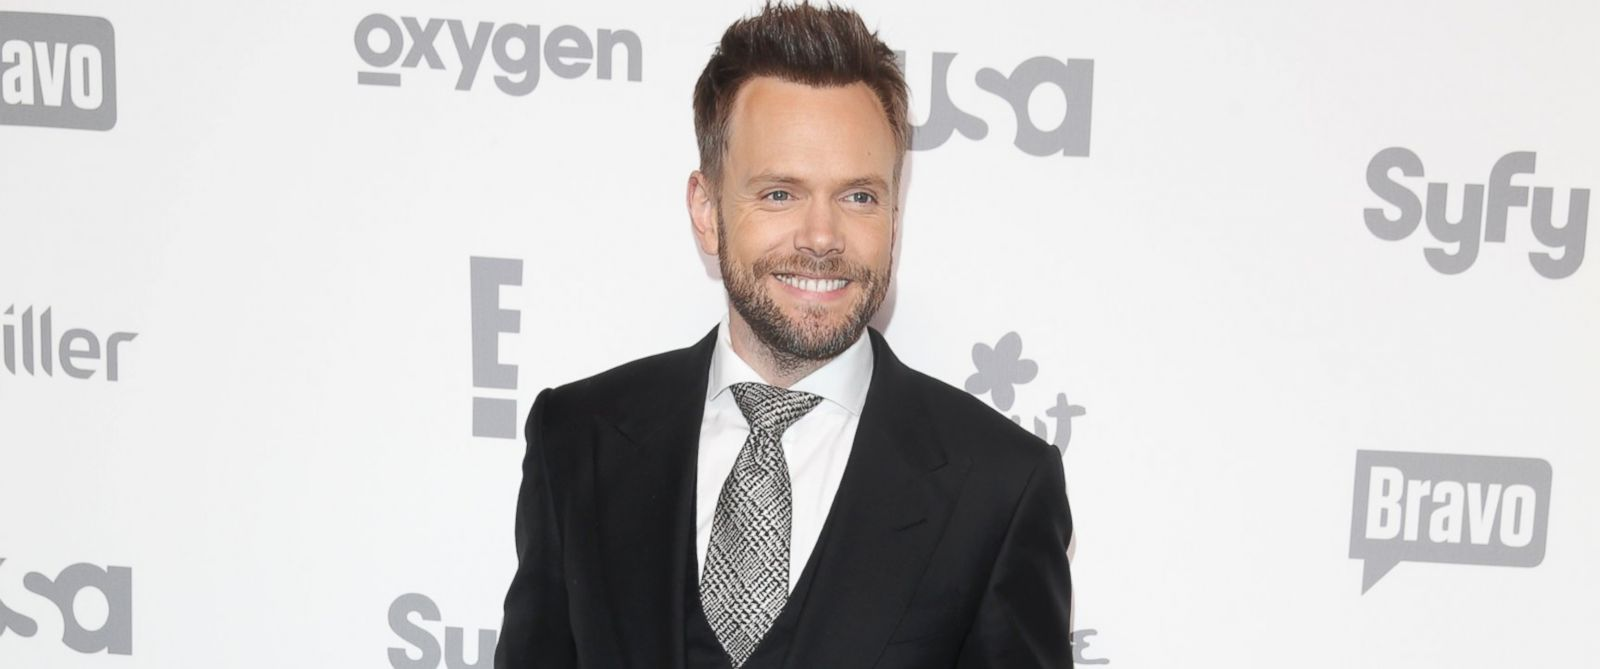 PHOTO: Joel McHale at the Javits Center in New York, May 14, 2015